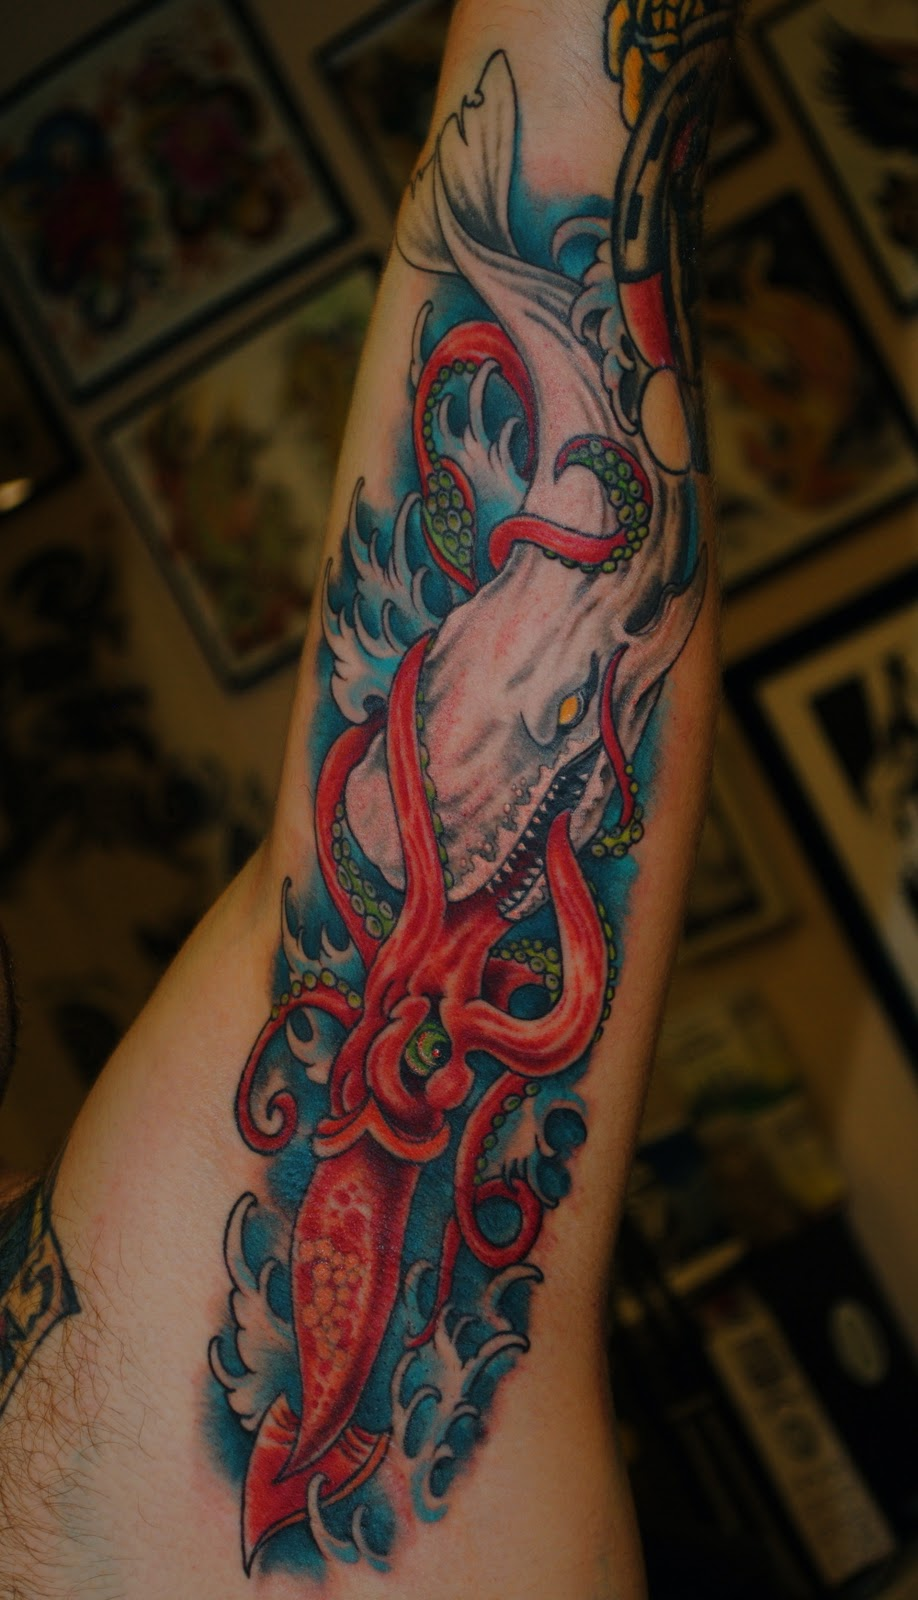 Bound For Glory Tattoo: NEW TATTOOS BY NICK CARUSO